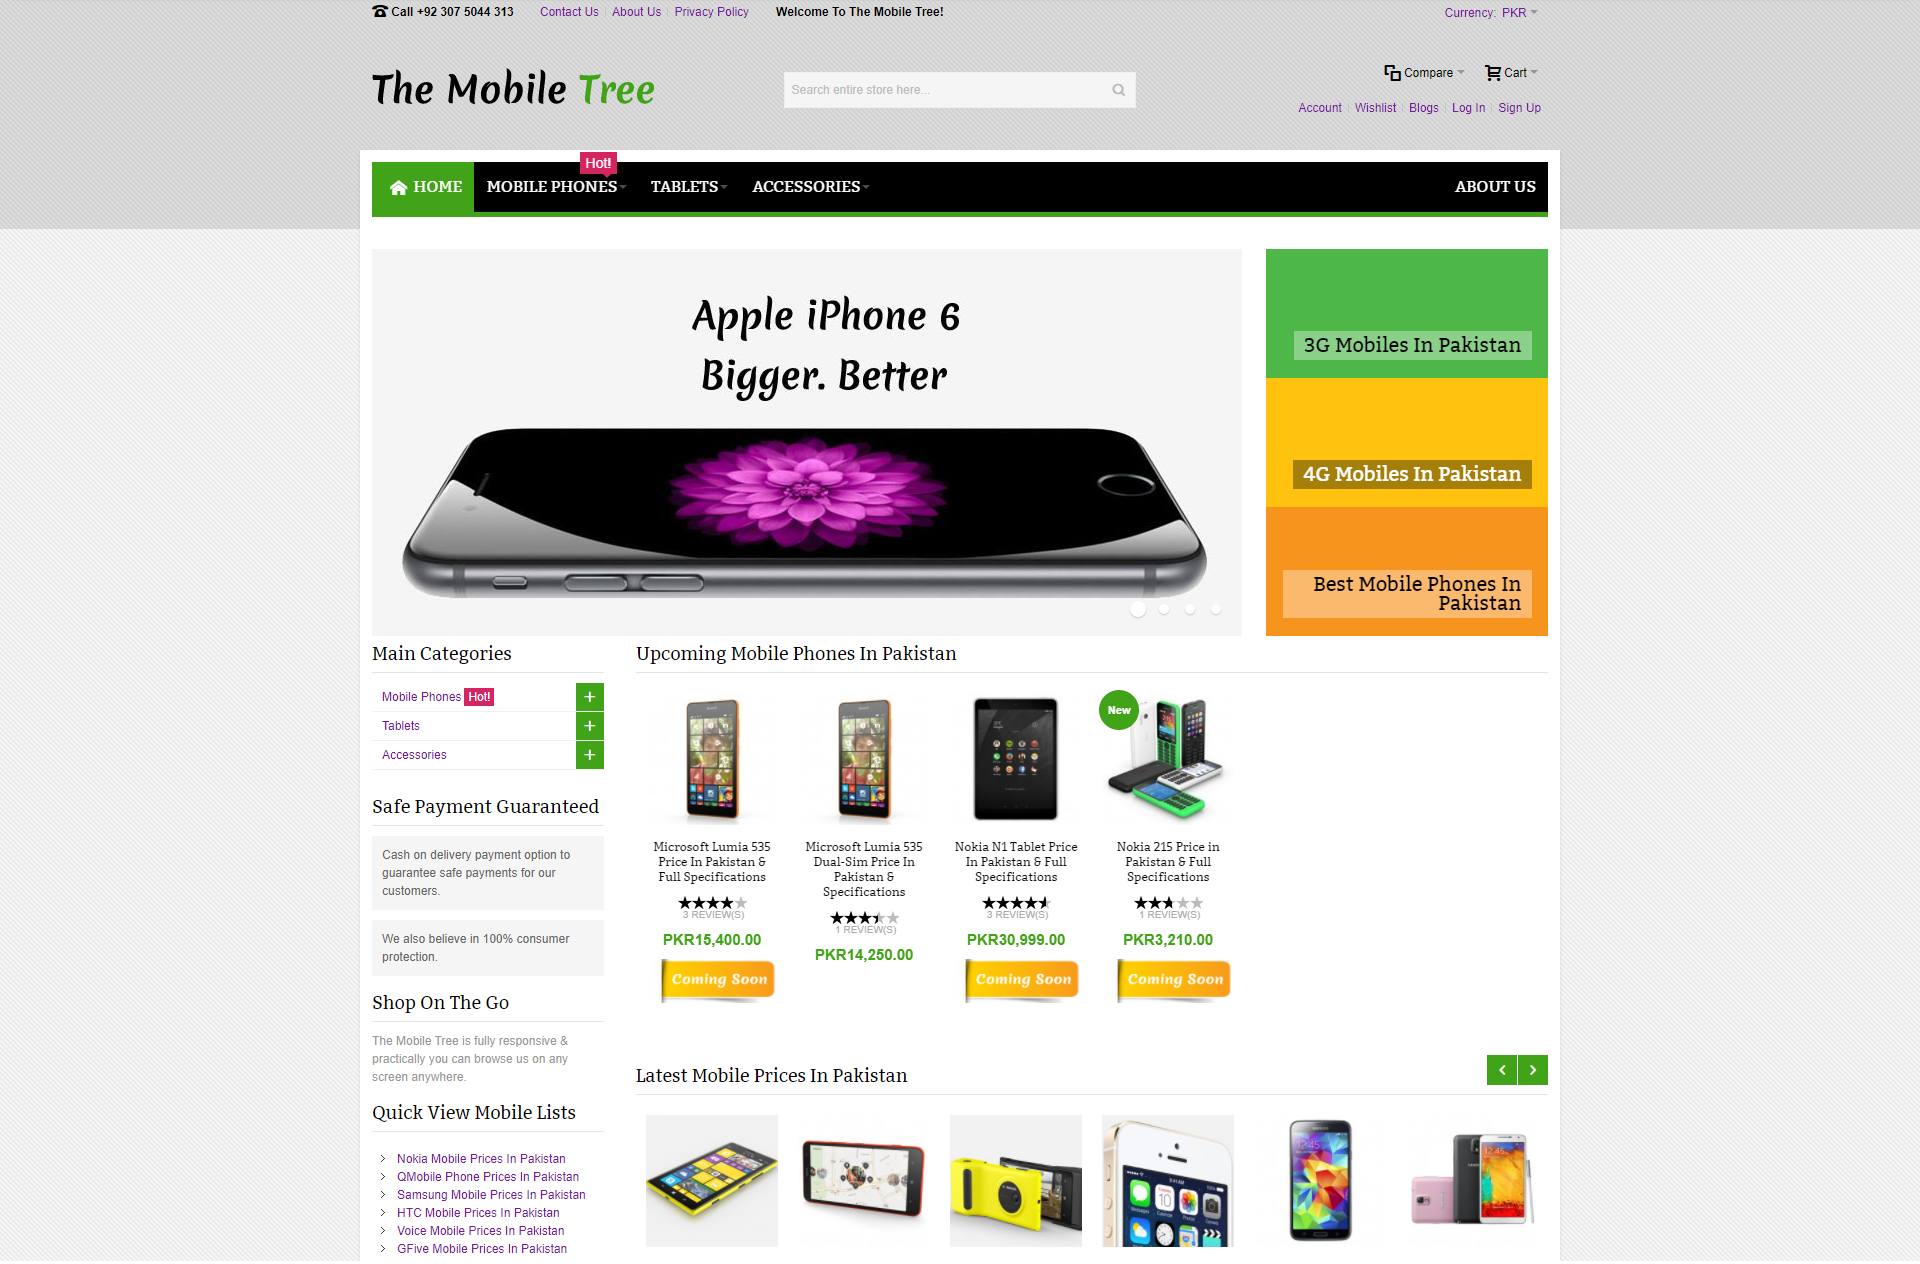 The Mobile Tree